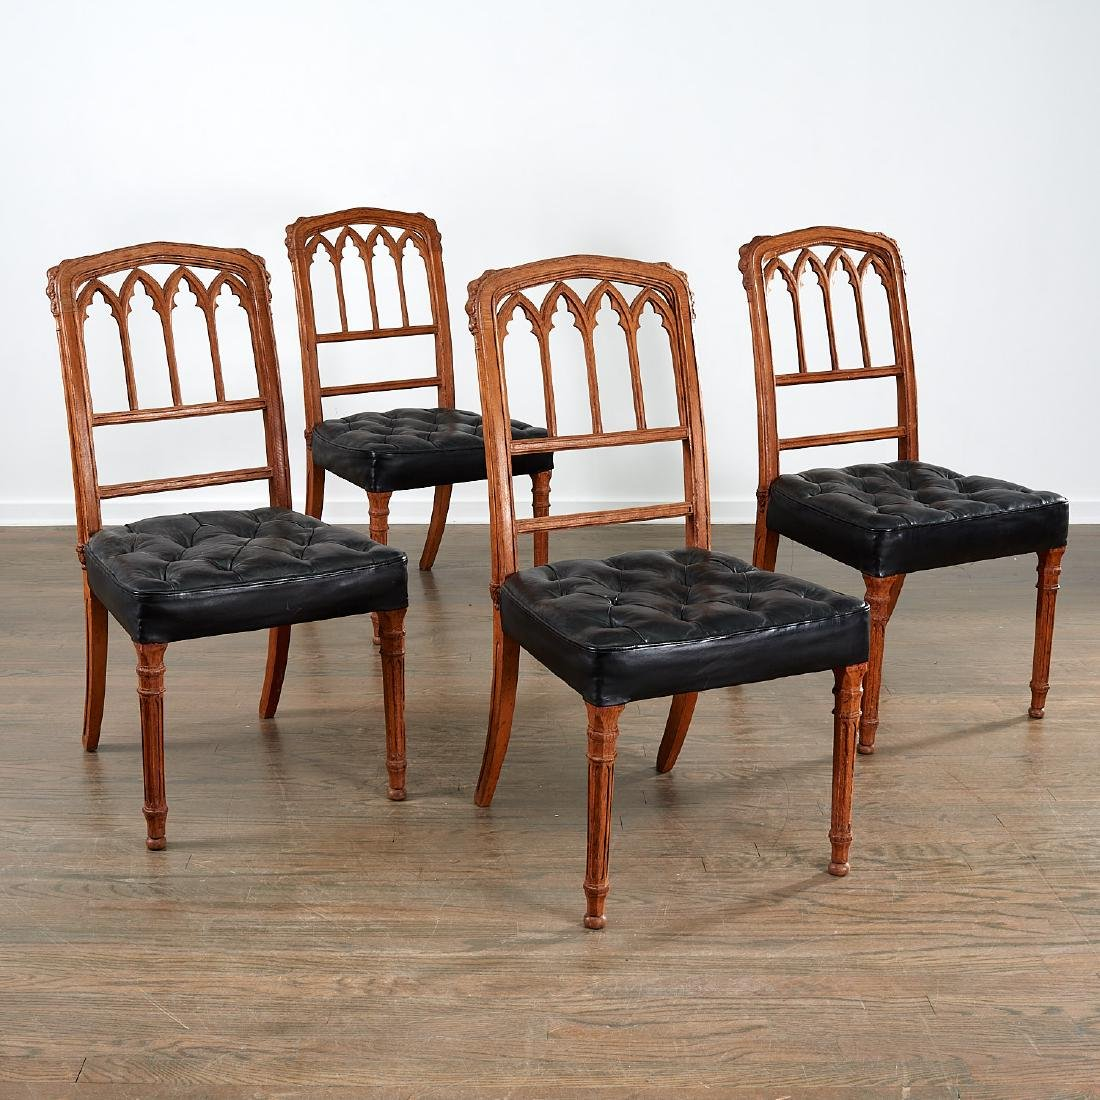 Set (4) Victorian Gothic Revival side chairs